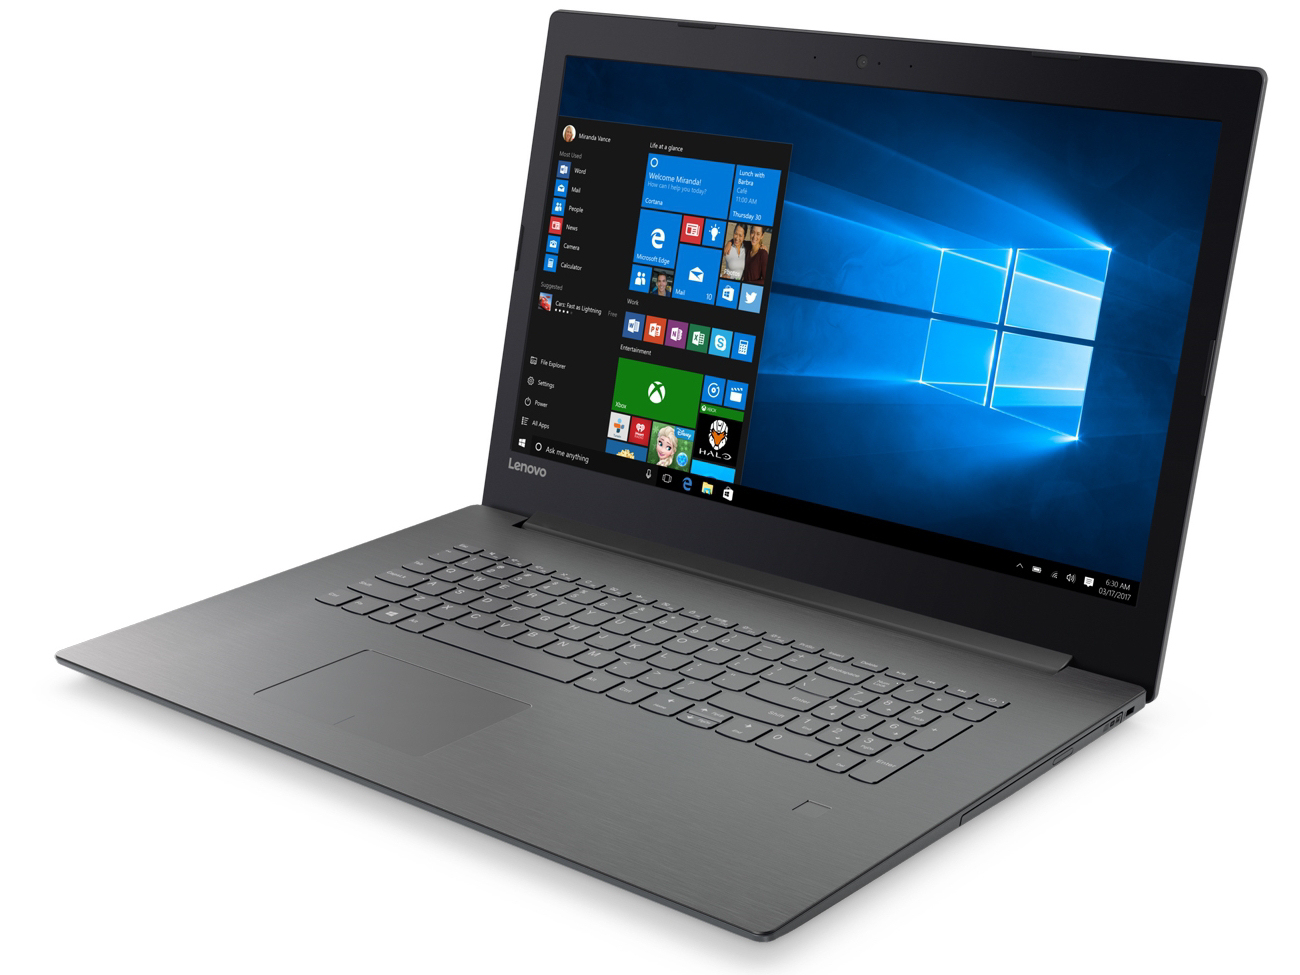 Notebookcheck's Top 10 Budget Office/Business Laptops ...